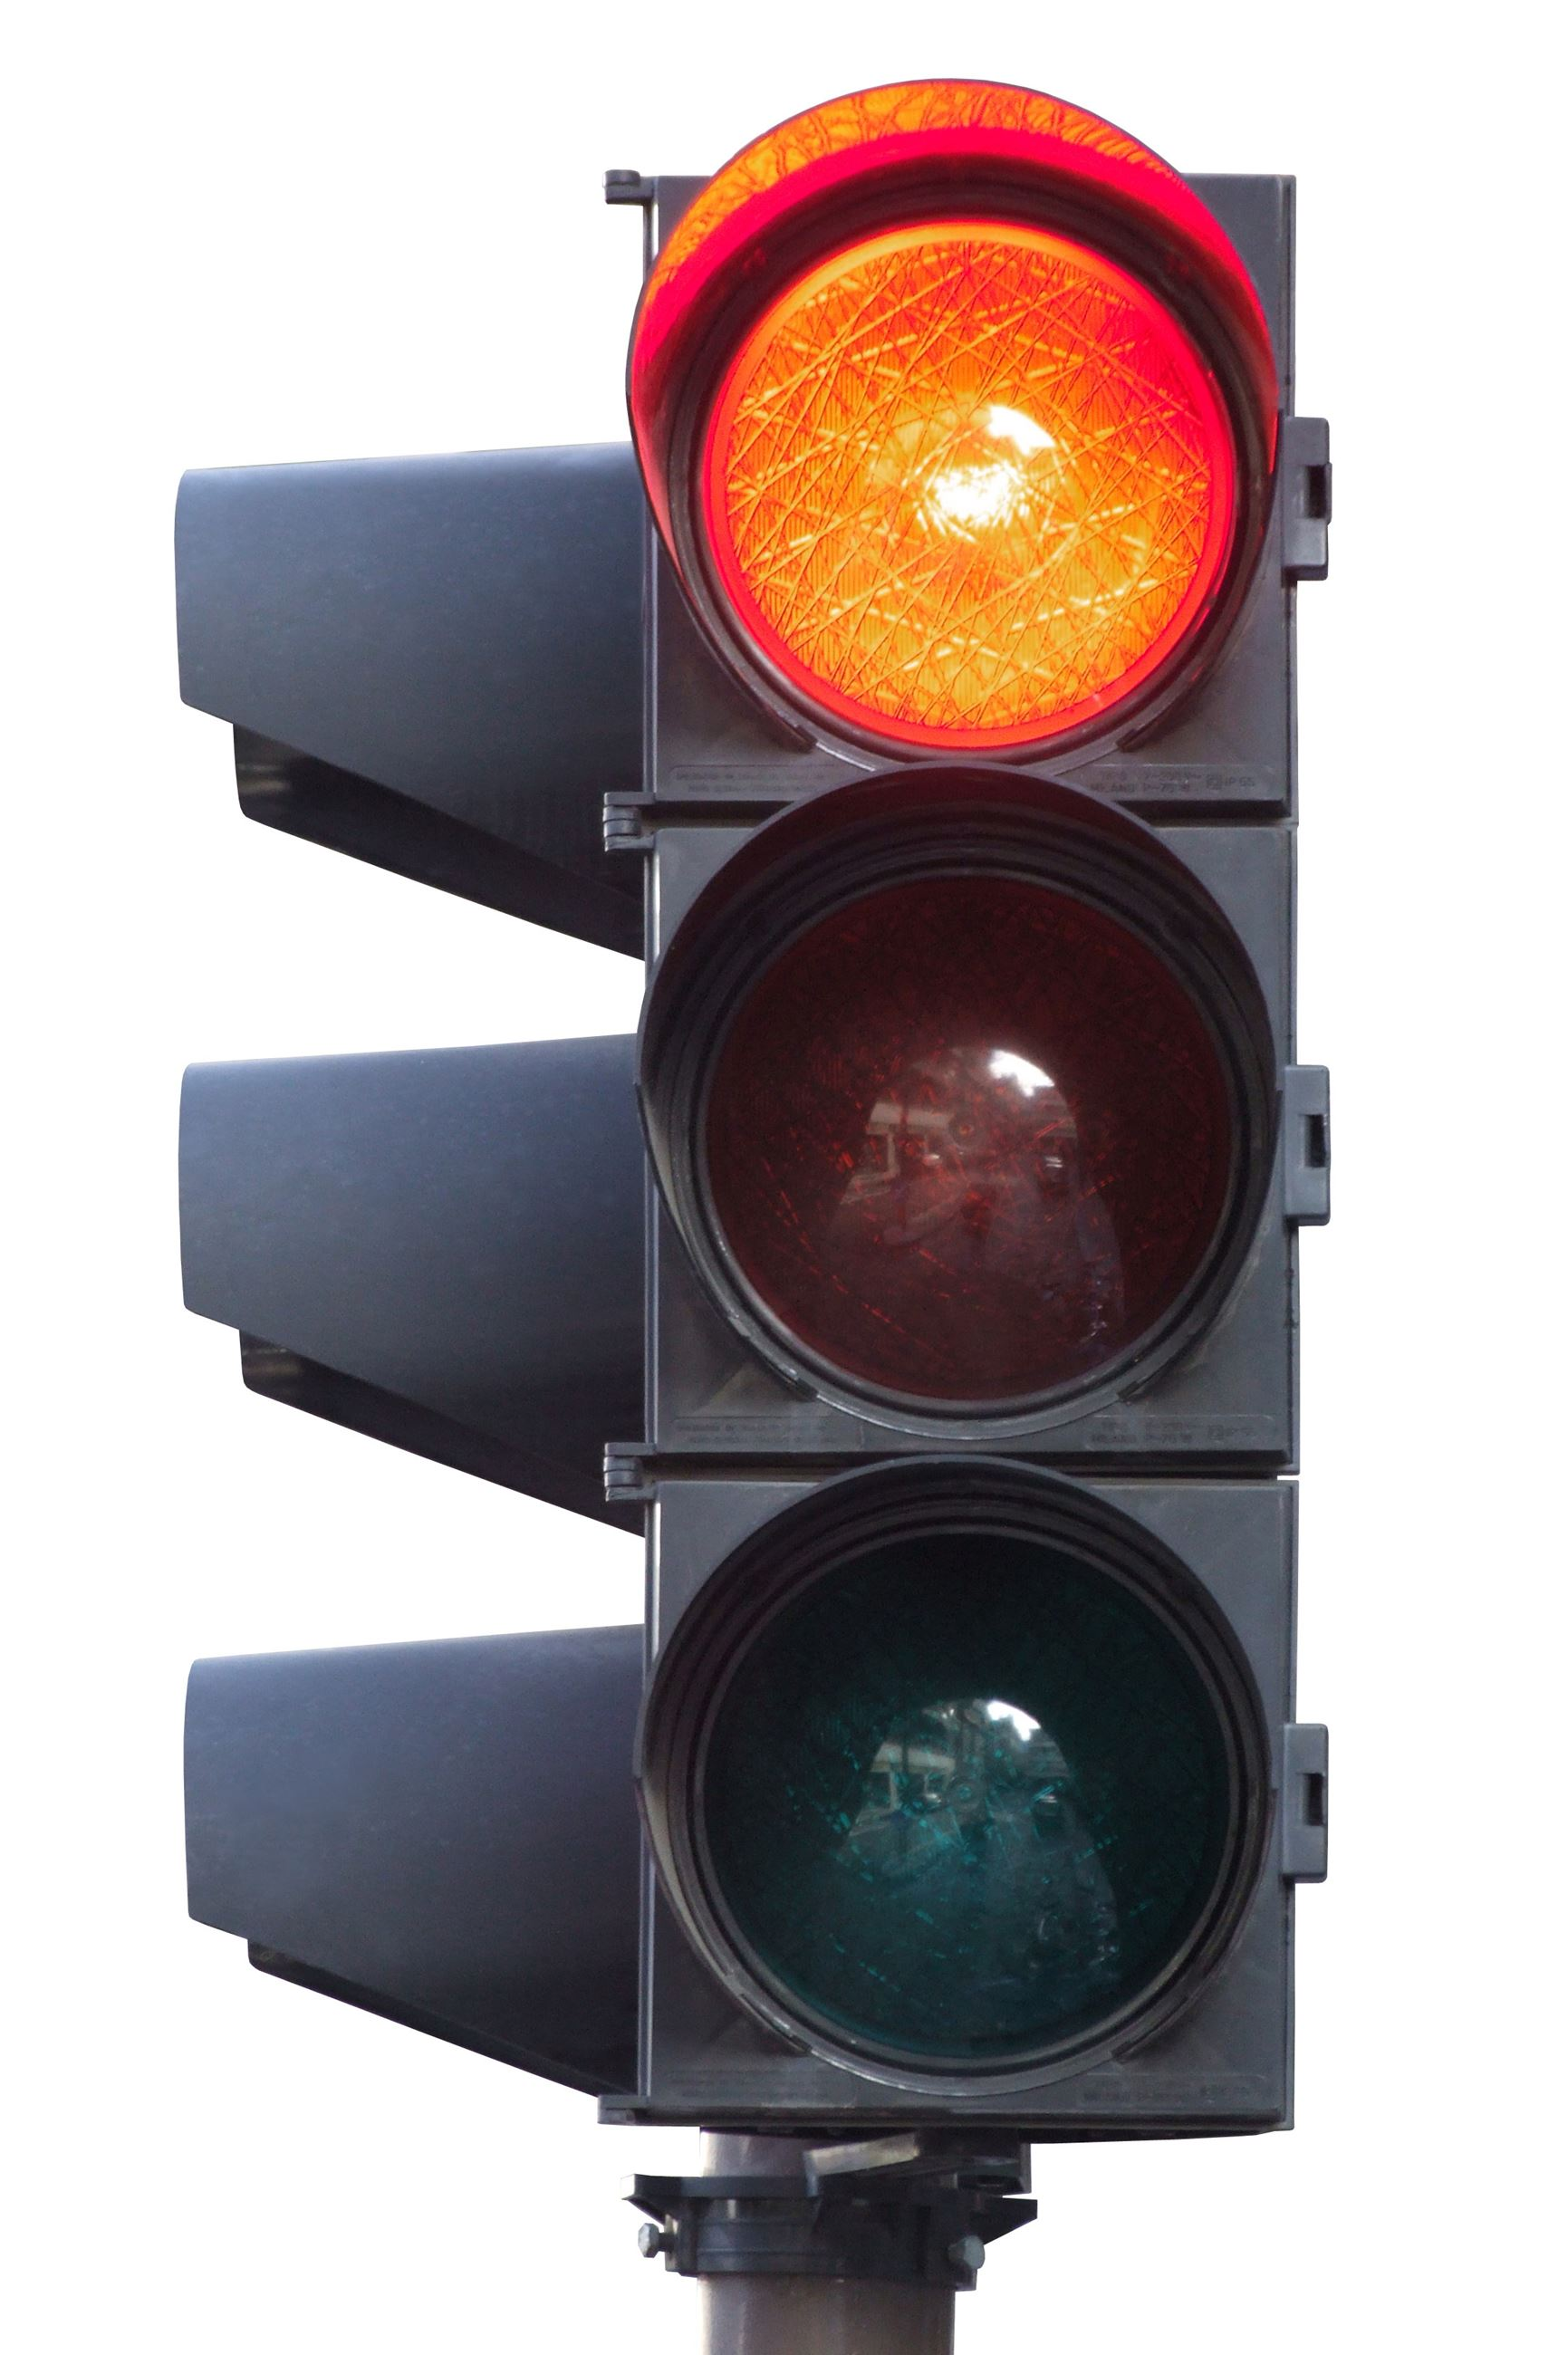 Black traffic light with the red light at the top lit